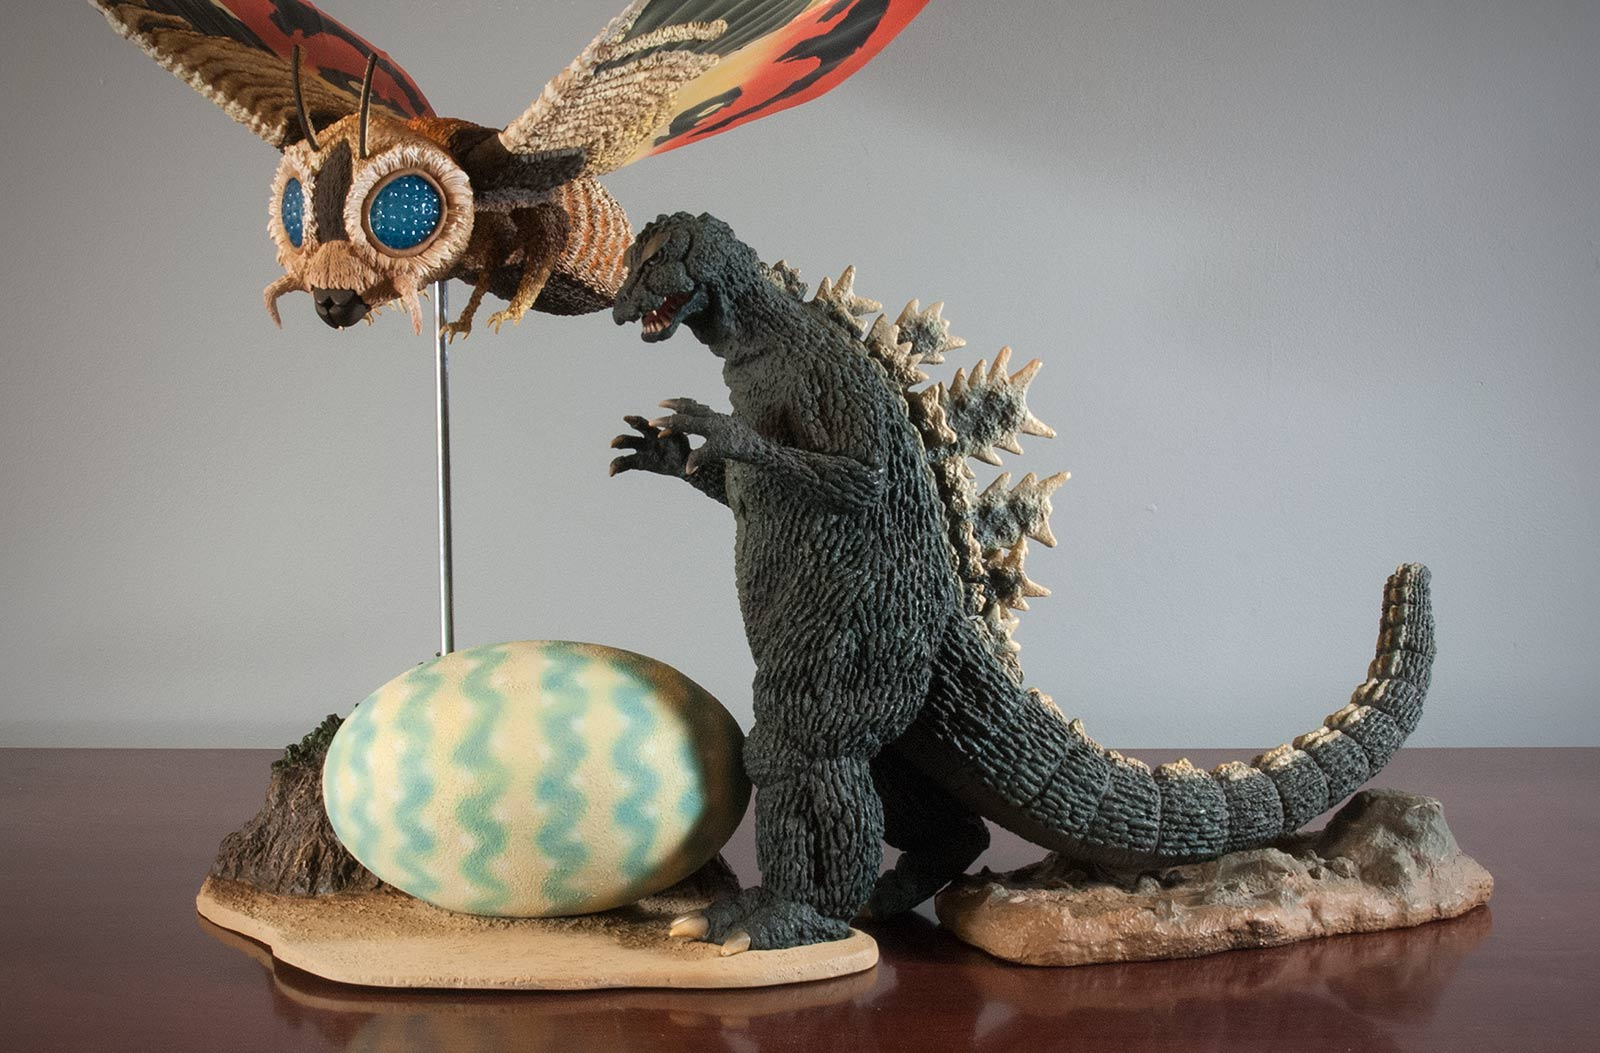 Combining an original Godzilla '64 with the new Mothra '64.